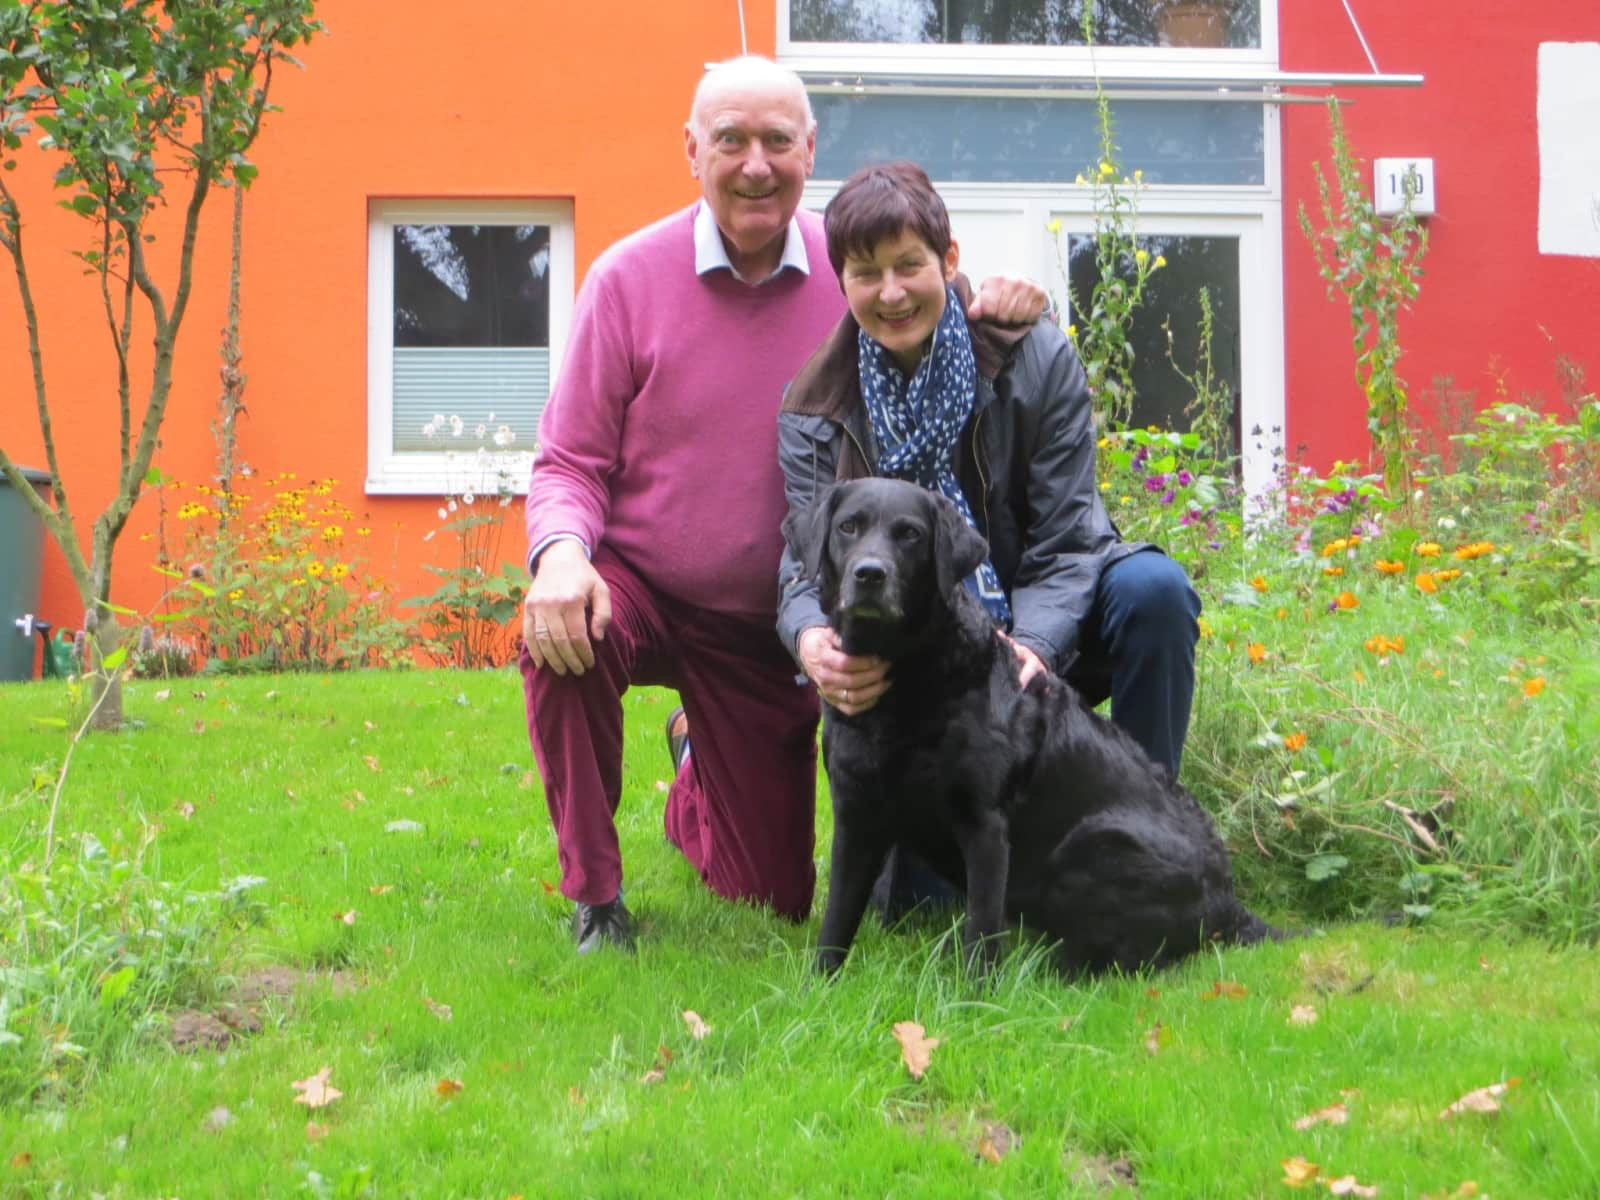 Brigitte & Walter from Ahrensburg, Germany